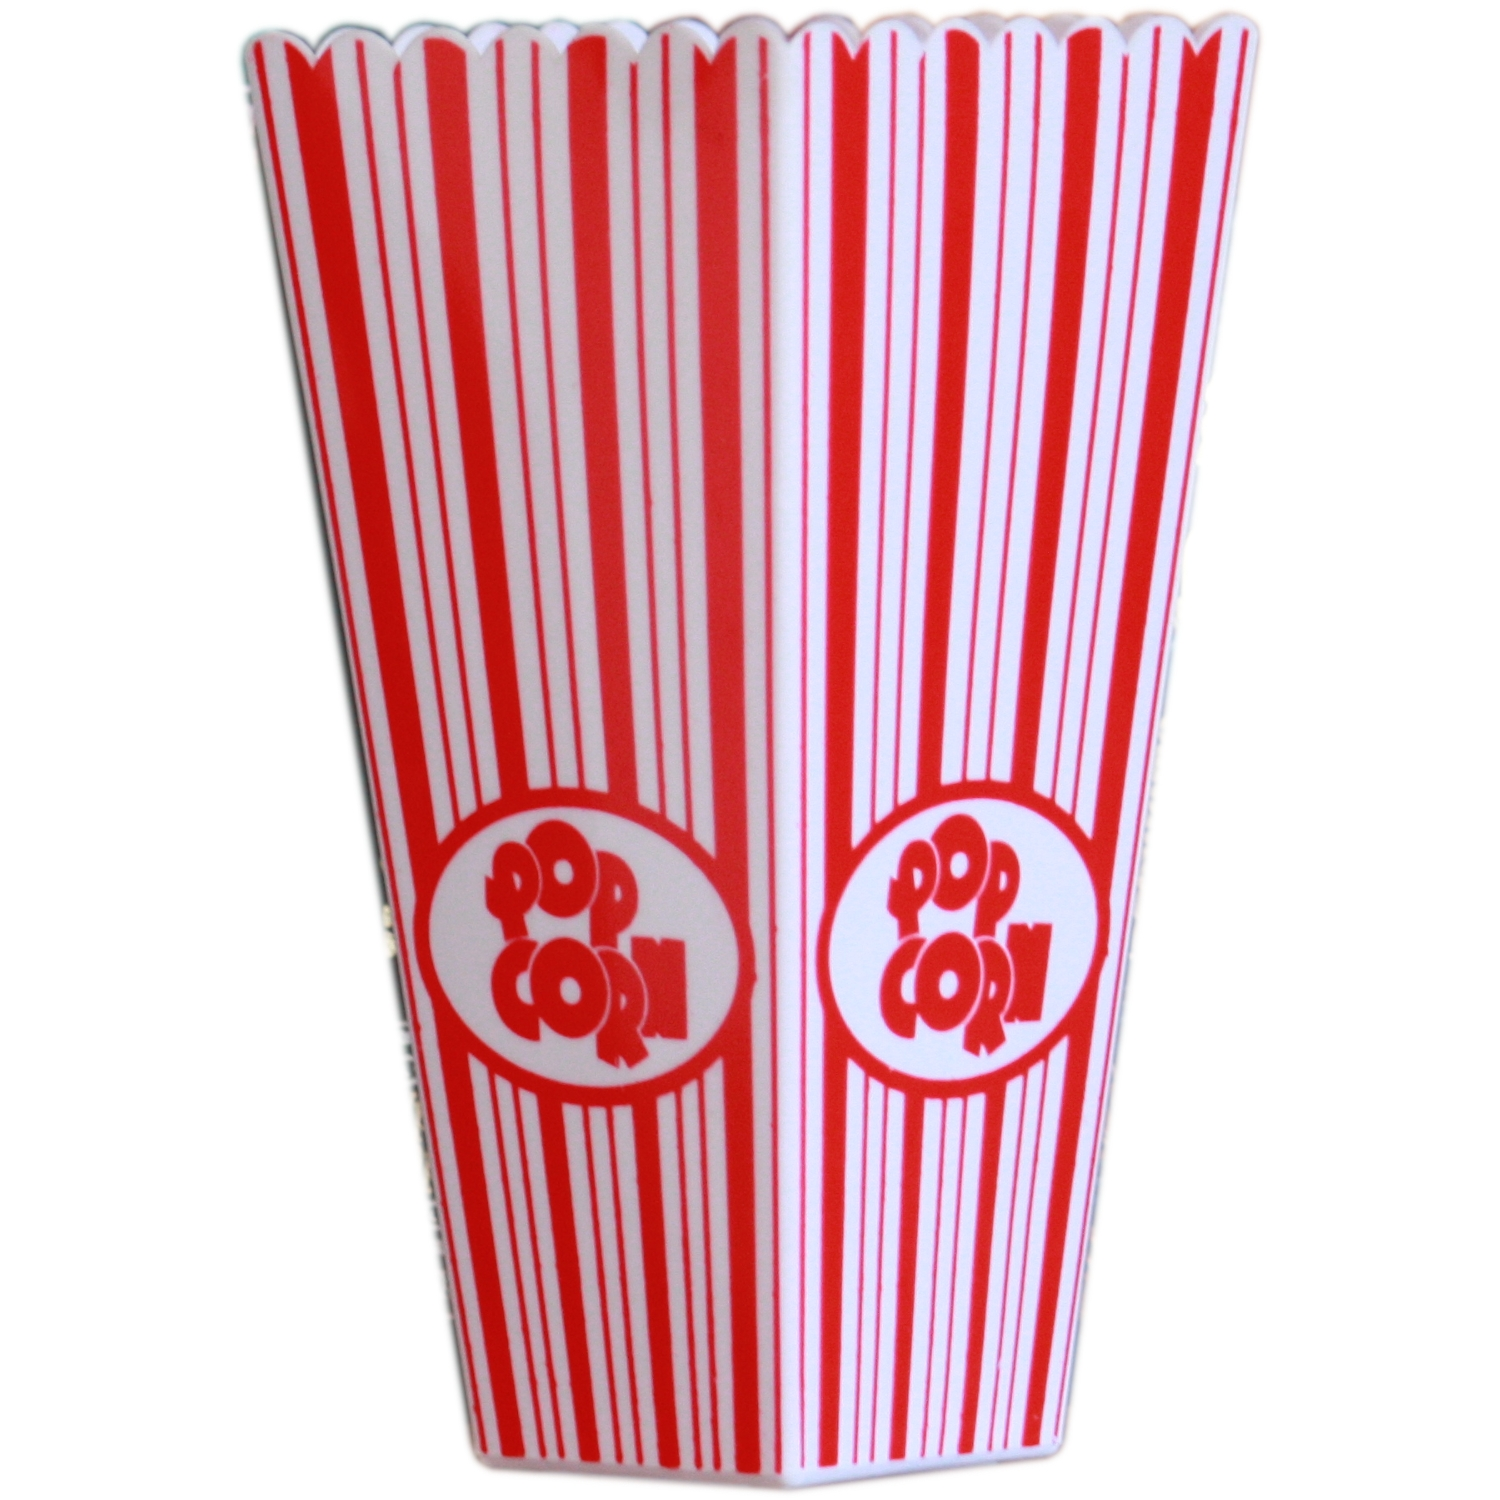 Striped Plastic Popcorn Holder Tub With 1x Bag 100g